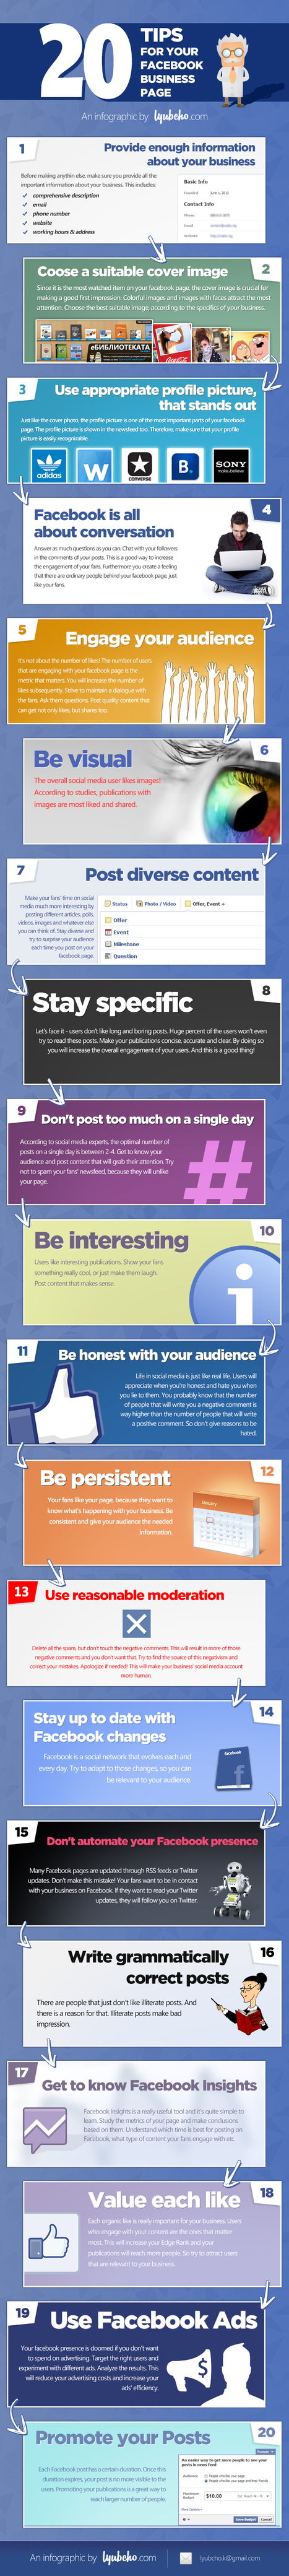 Infographic: 20 Tips for your Facebook Business Page | Daily Magazine | Scoop.it